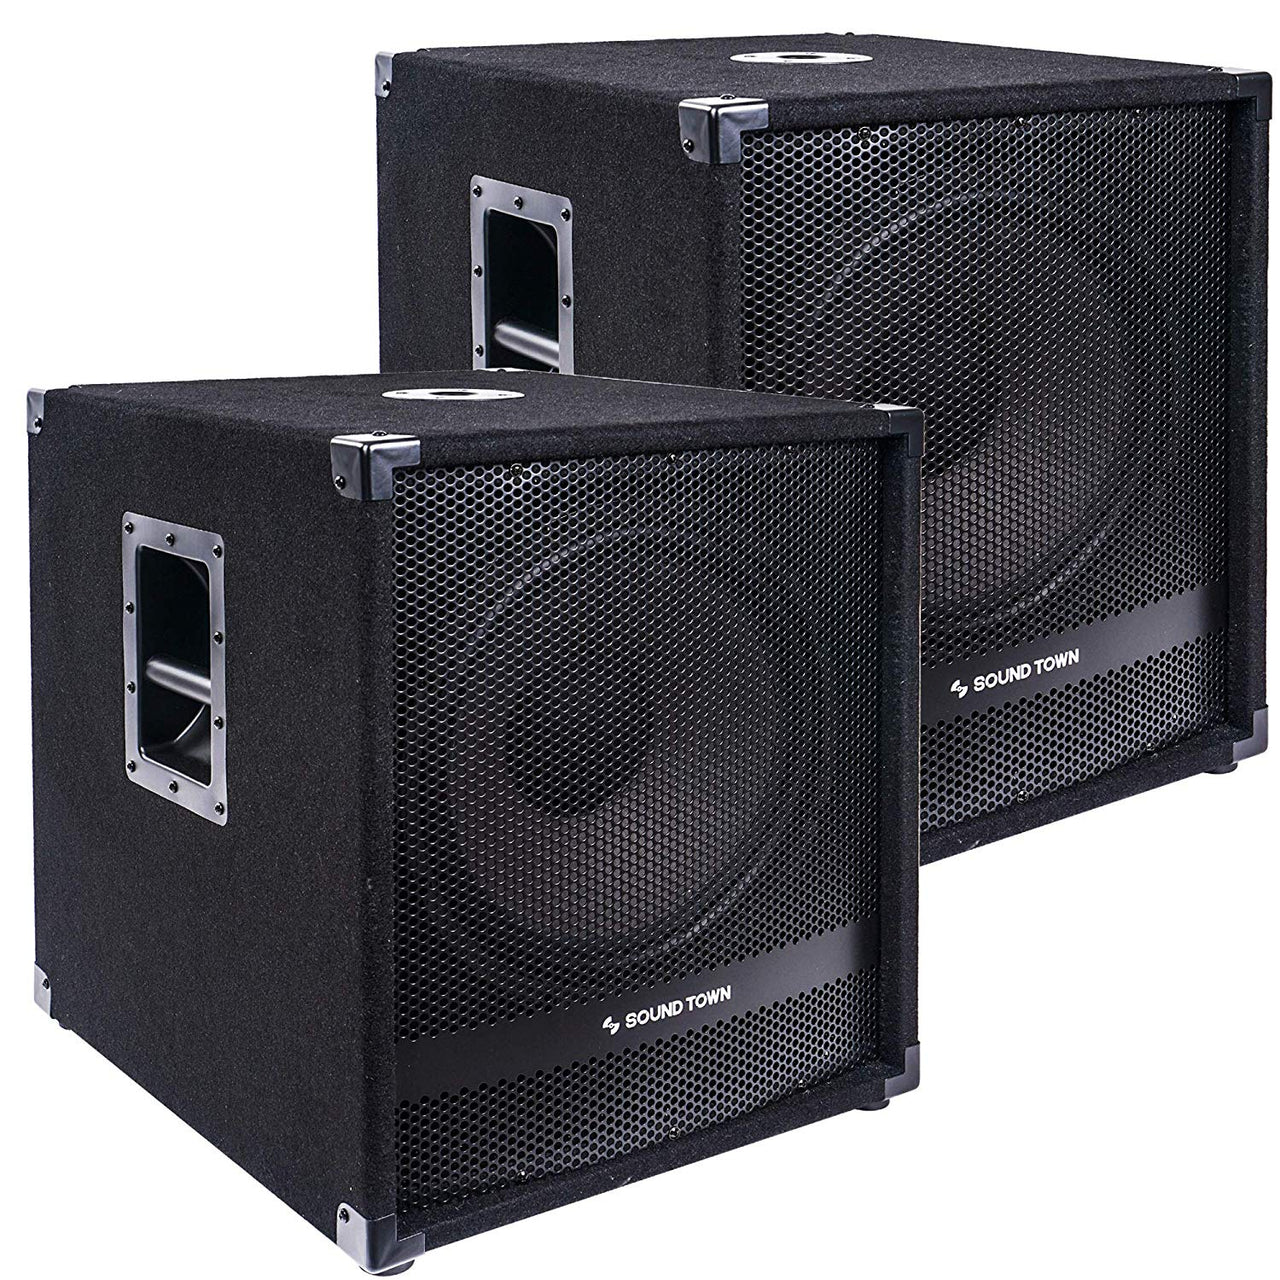 "2-Pack 15"" 3200 Watts Powered Subwoofers with DSP, DJ PA Pro Audio Sub with 4-inch Voice Coil (METIS-15SPW-PAIR)"